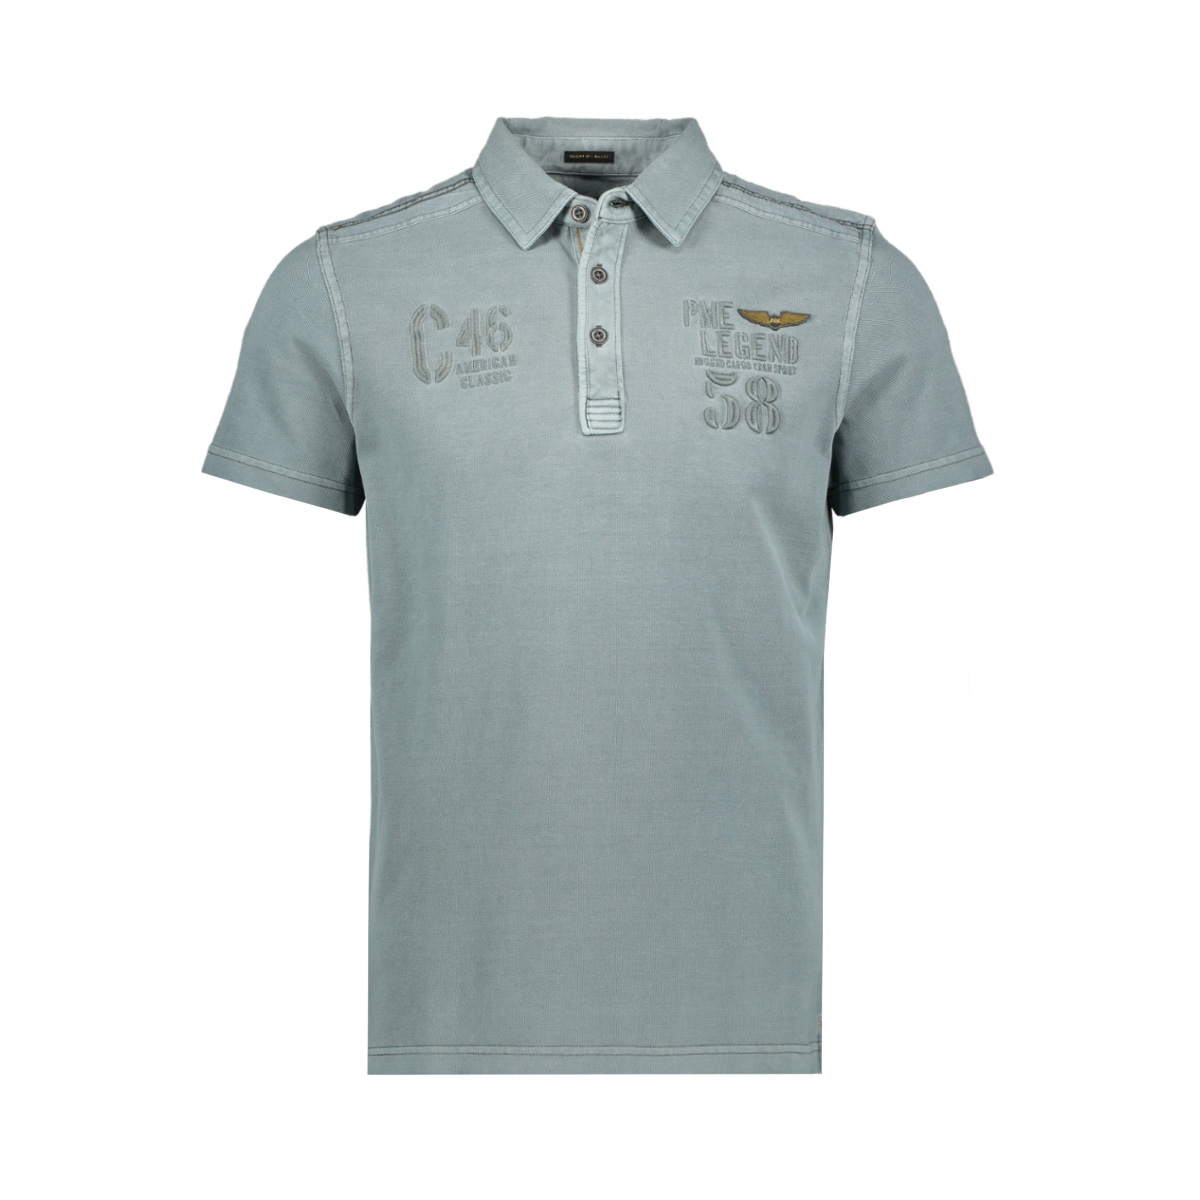 short sleeve polo ppss195853 pme legend polo 9084